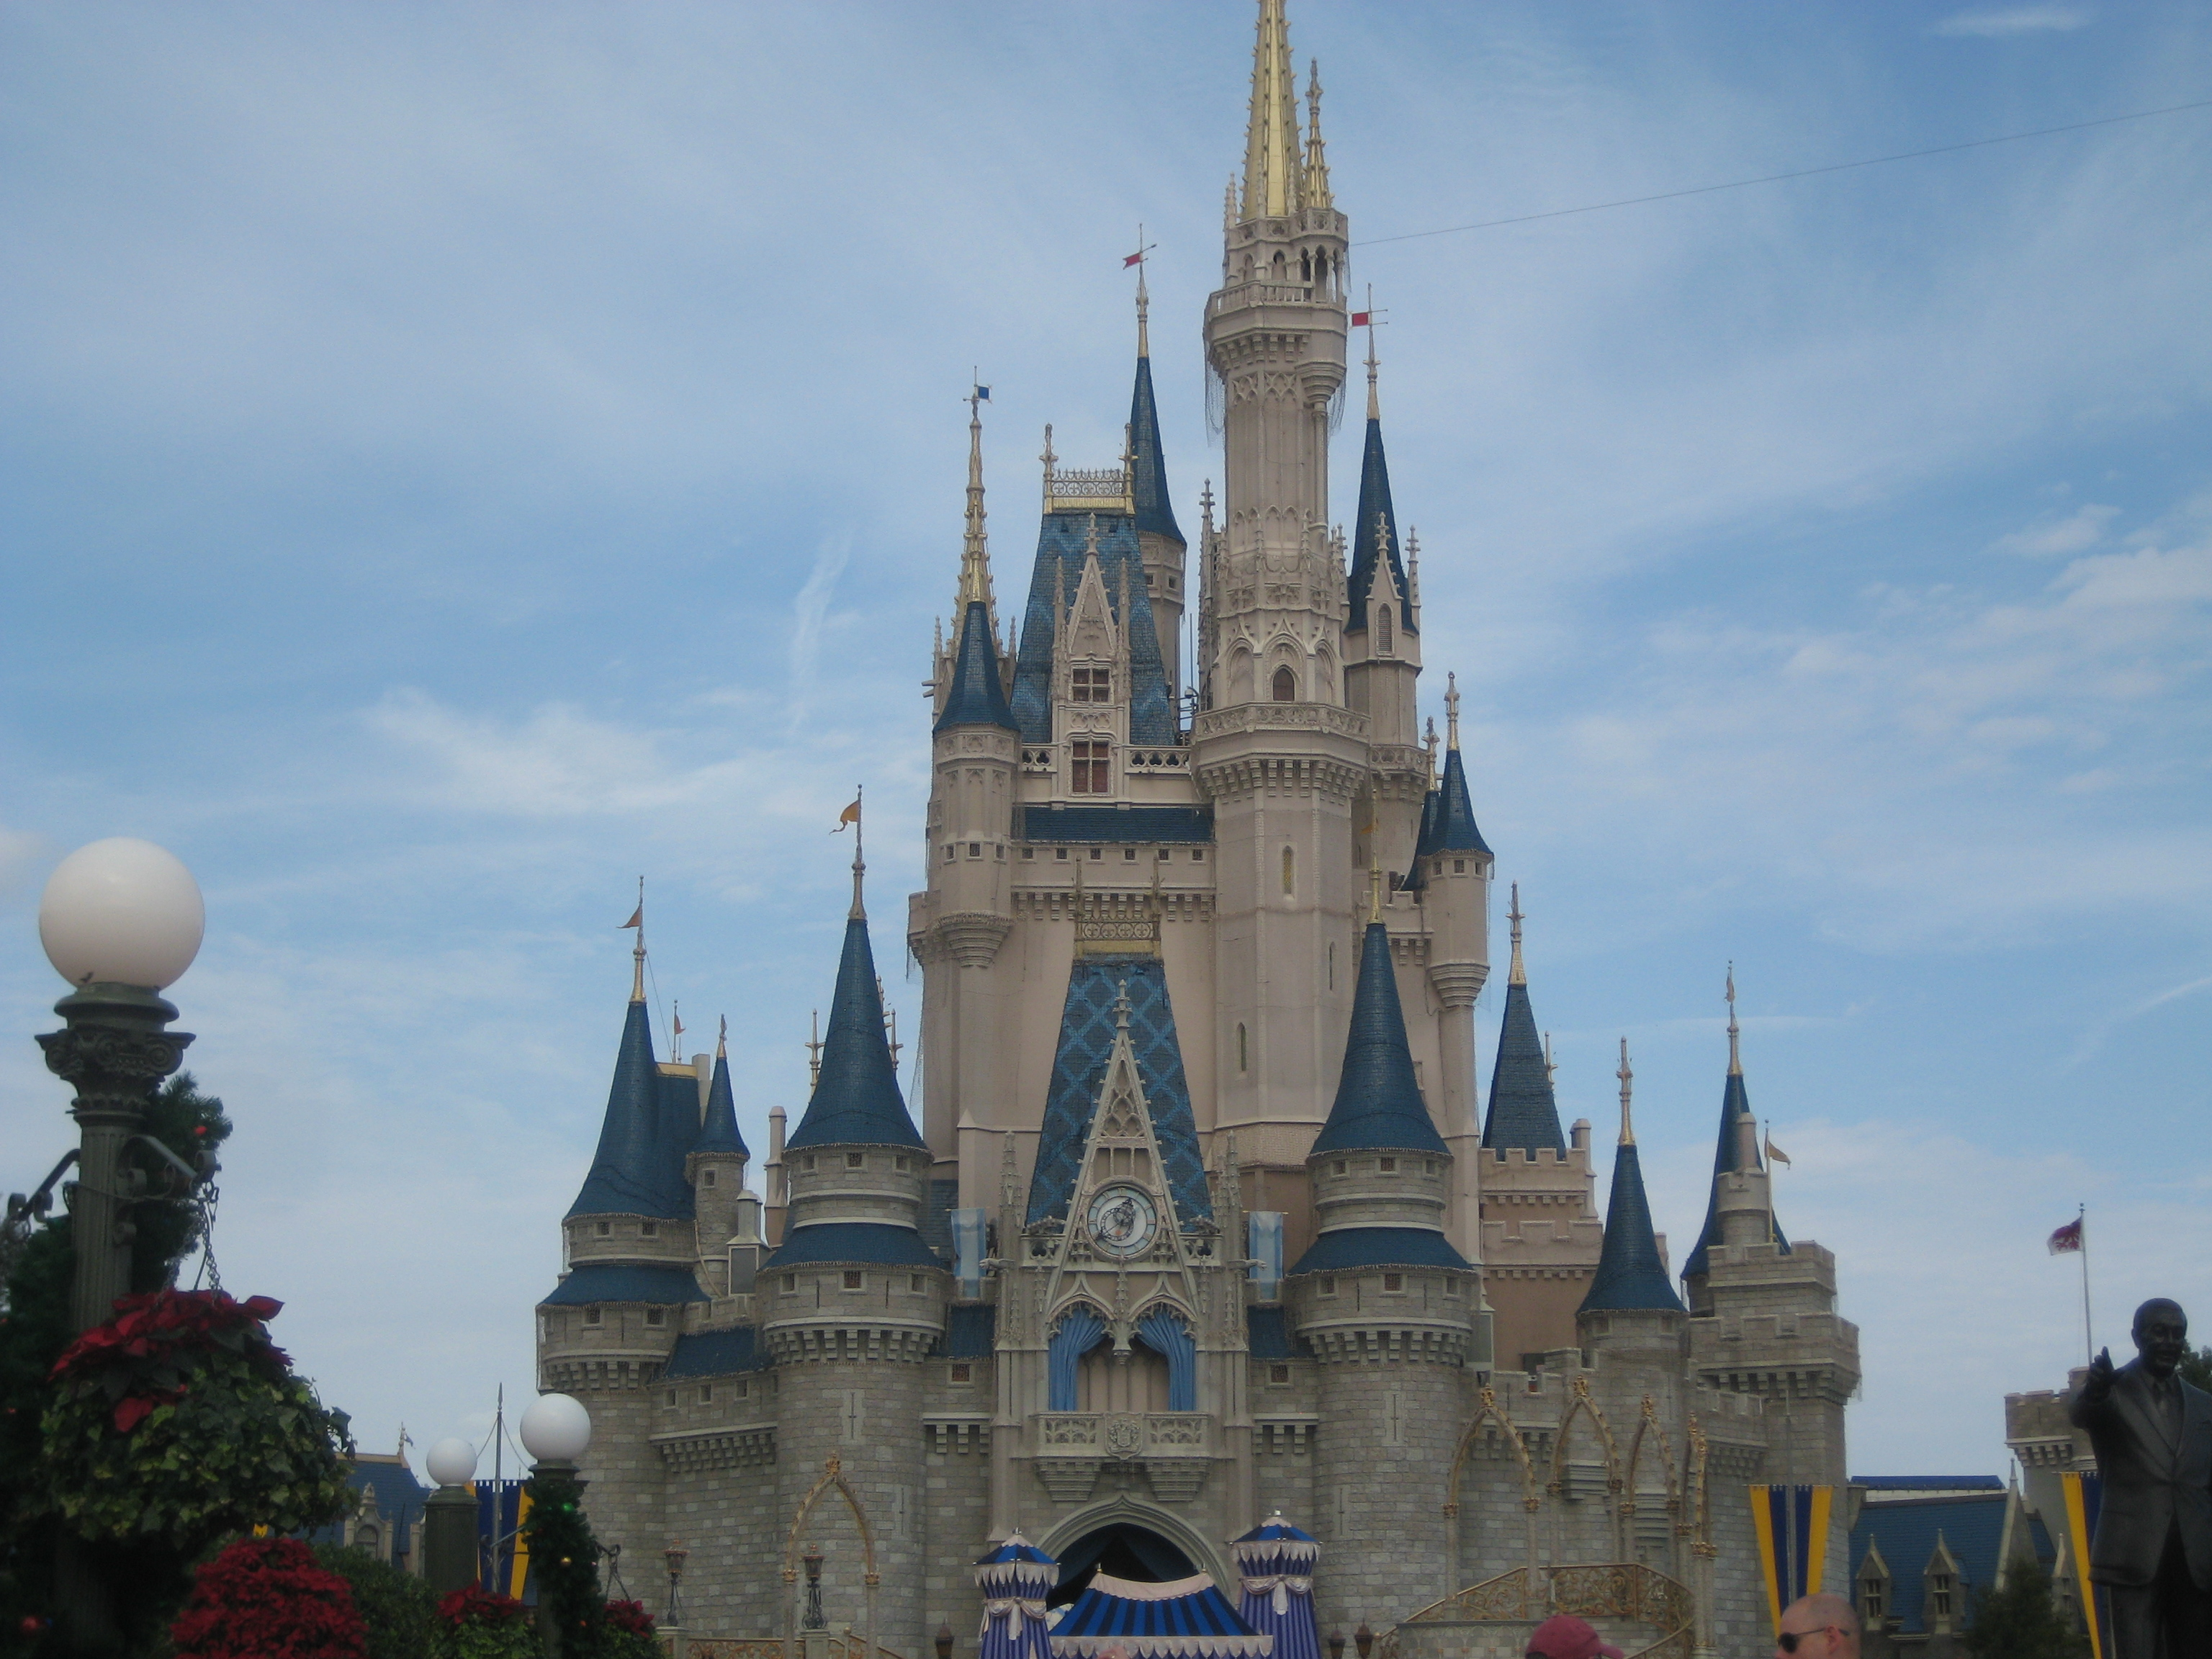 Cinderella Castle at the Magic Kingdom. One of many oversized fantasy buildings you and your family will be pictured in front of.